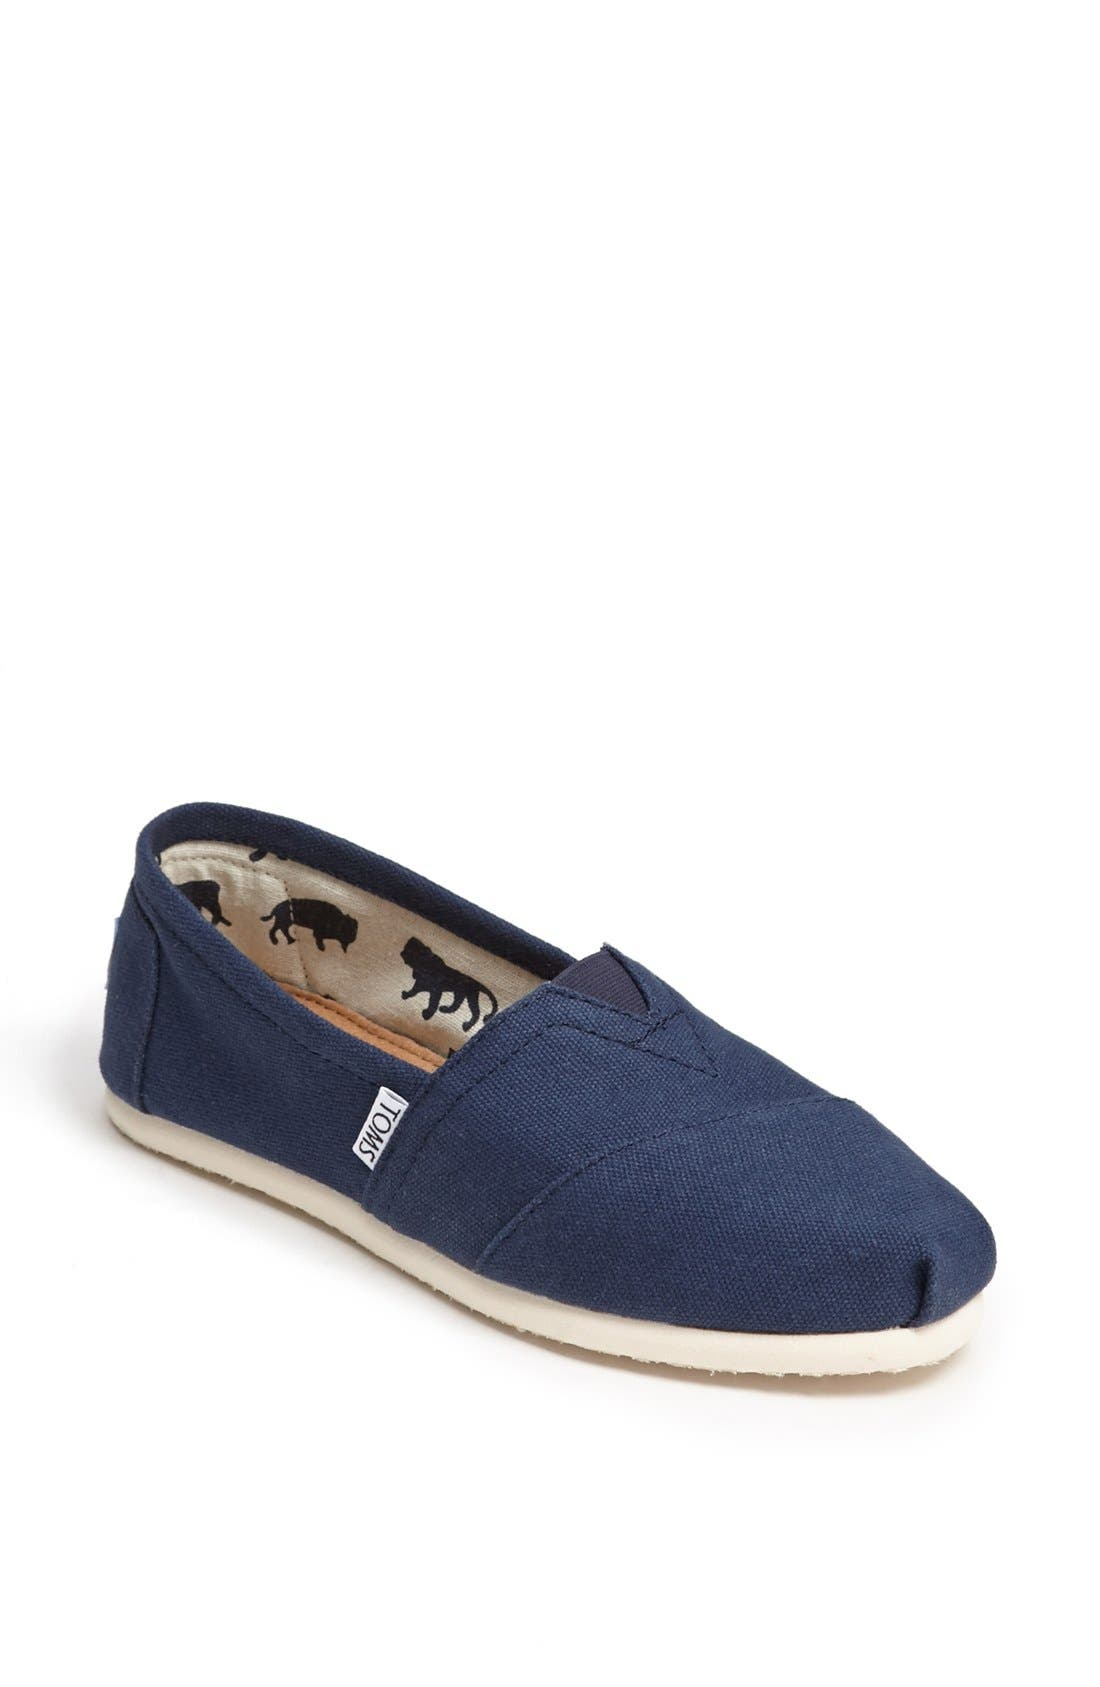 aaef1815459 Black TOMS for Women